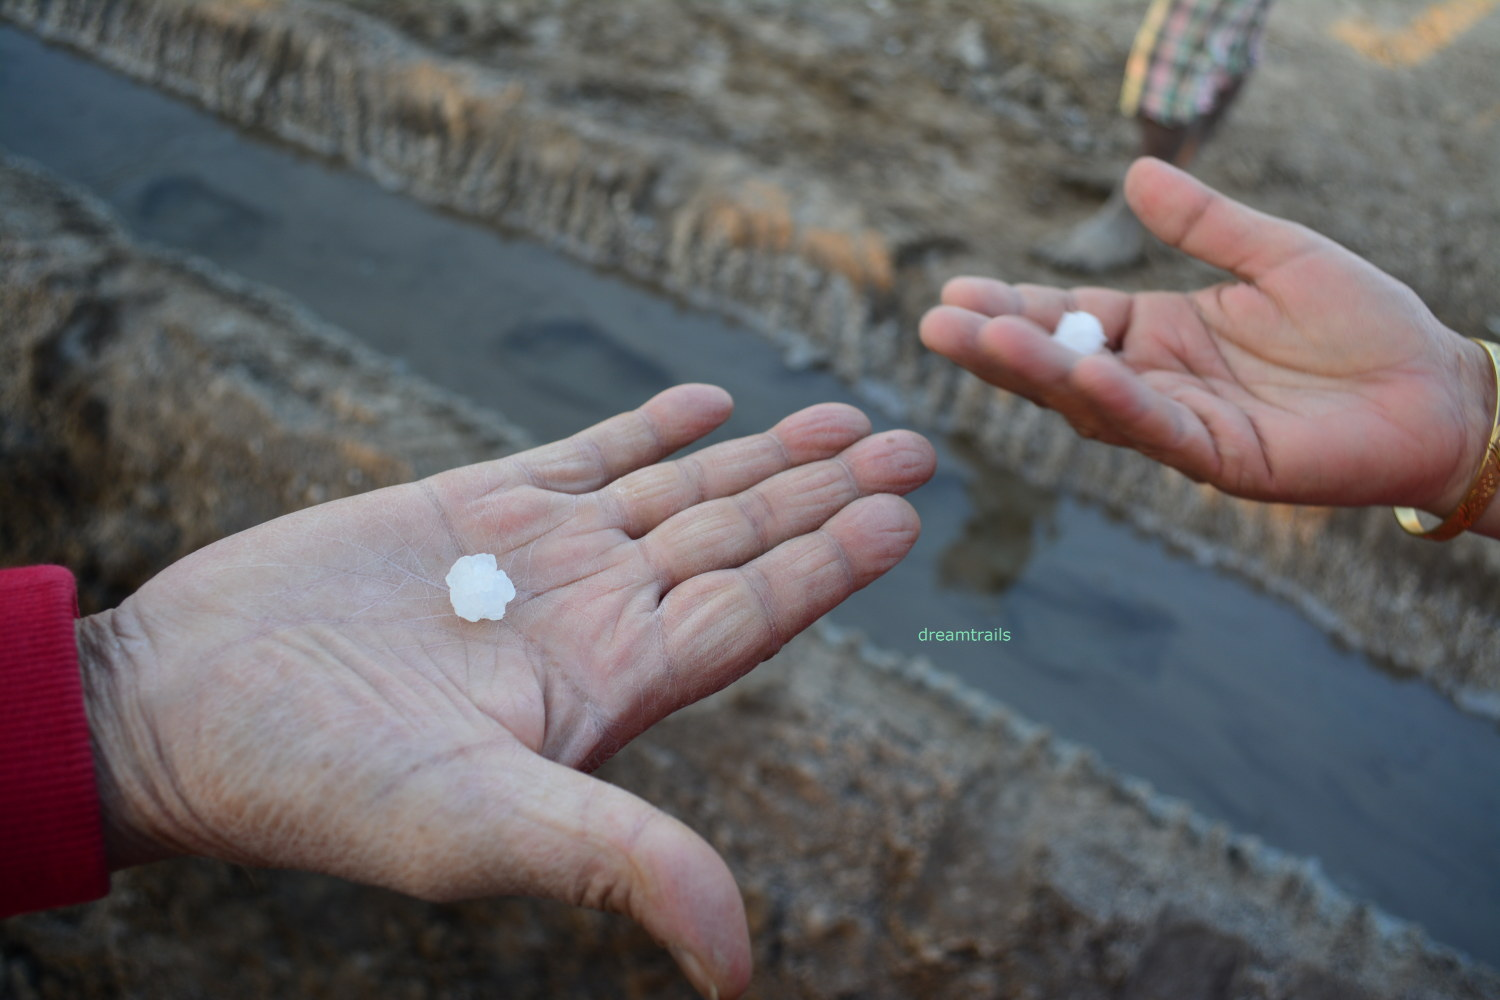 Extracted salt at Little Rann of Kutch